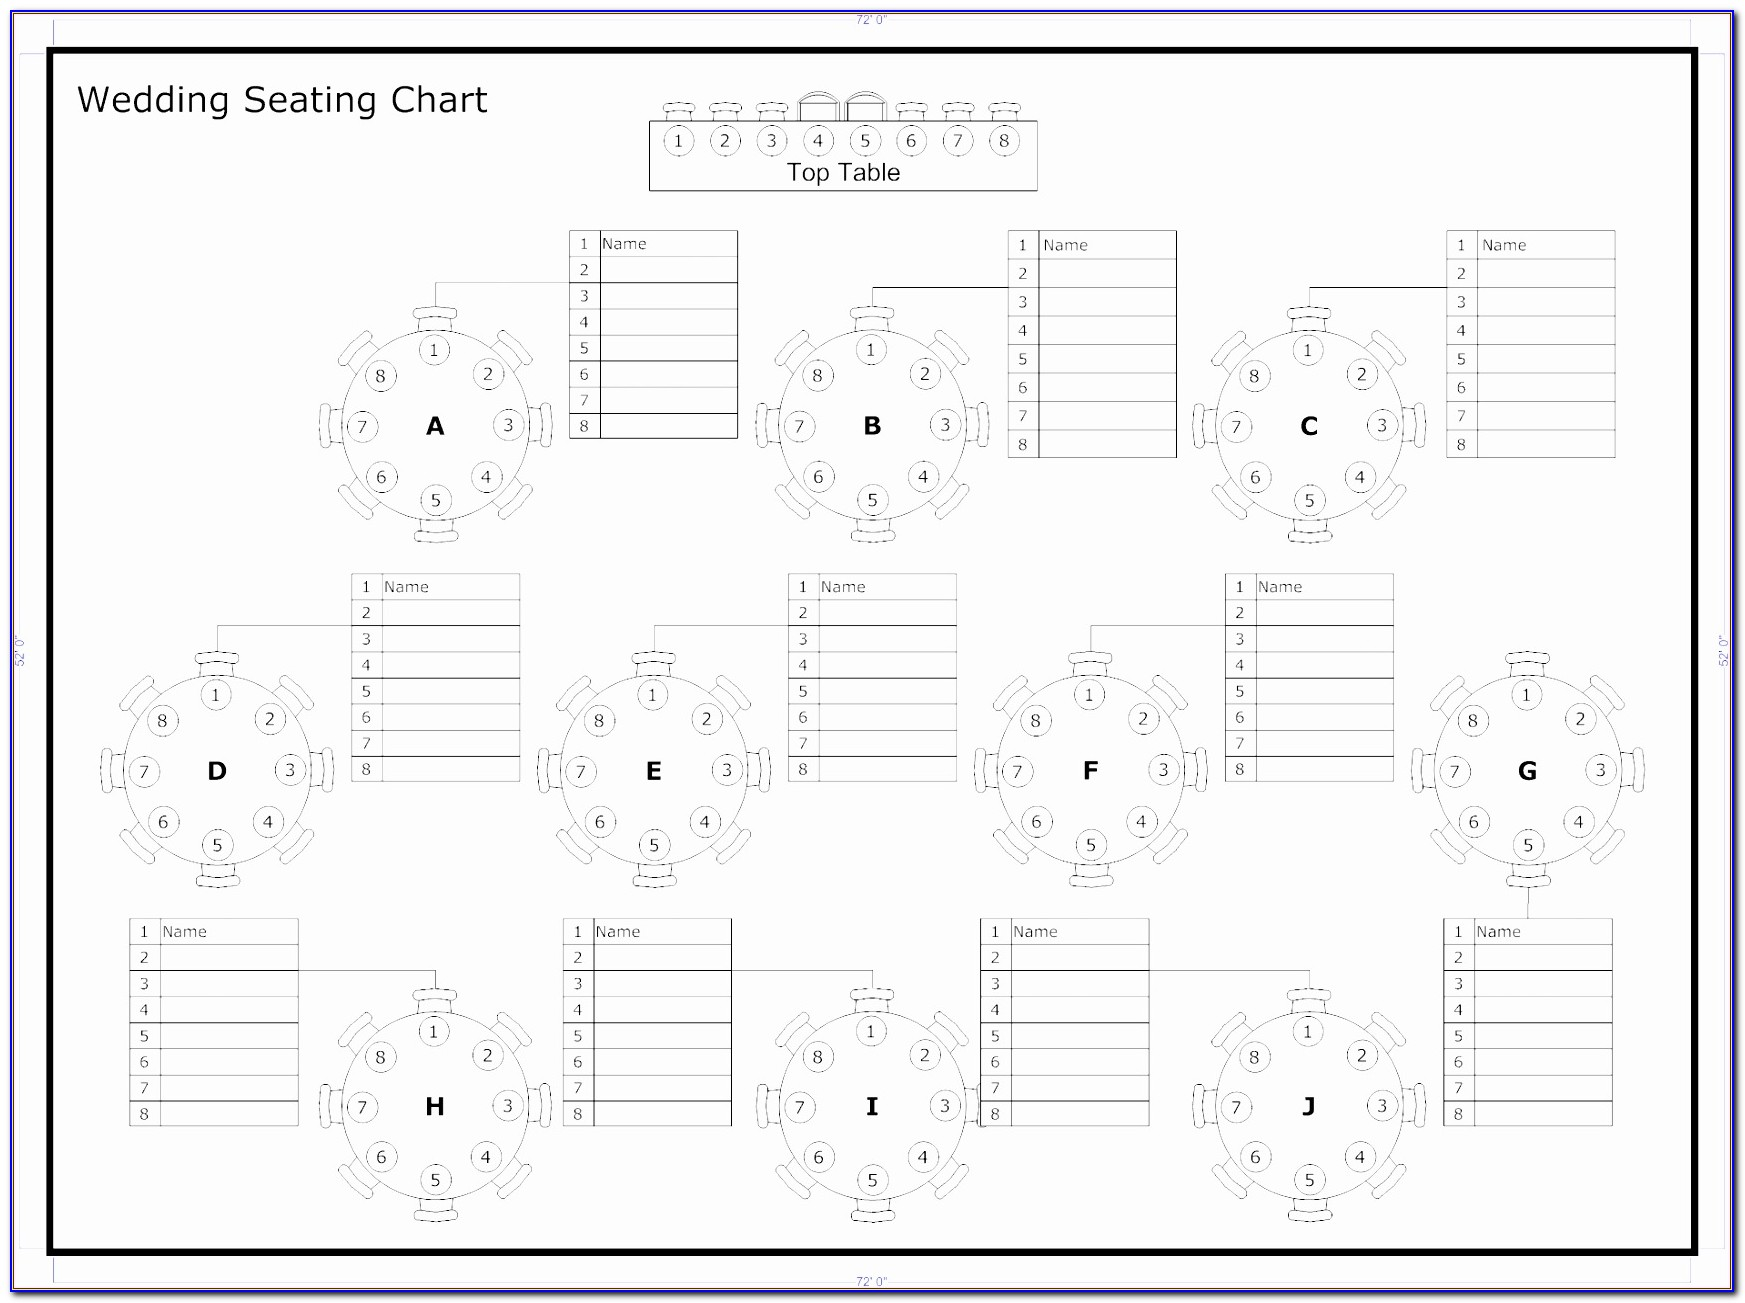 Wedding Seating Chart Template Excel Ugtro Beautiful Free Seating Chart Template